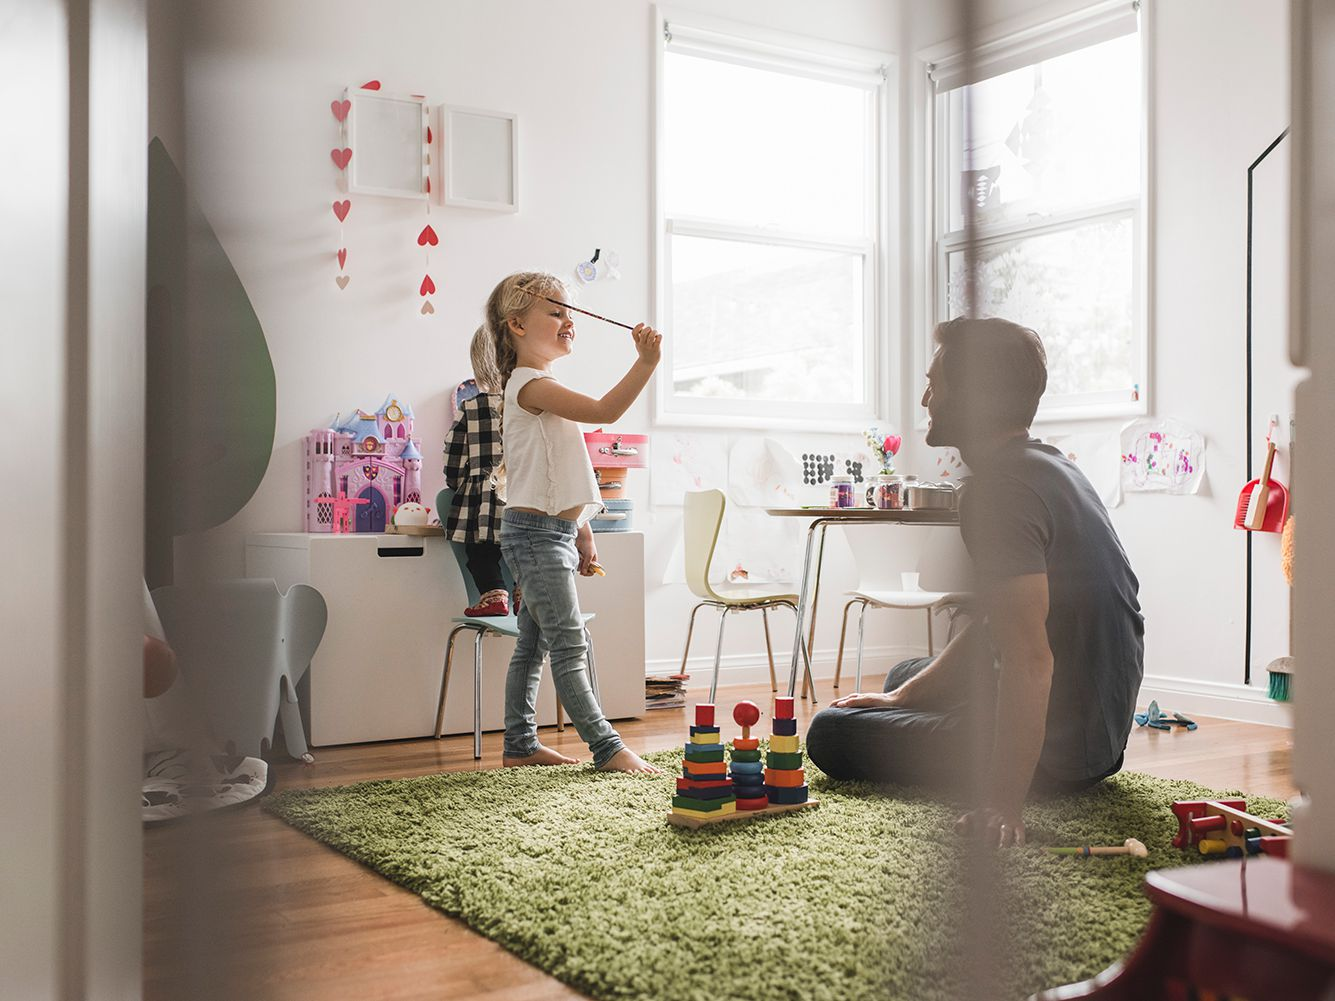 10 Fun Family Games to Play on Father's Day